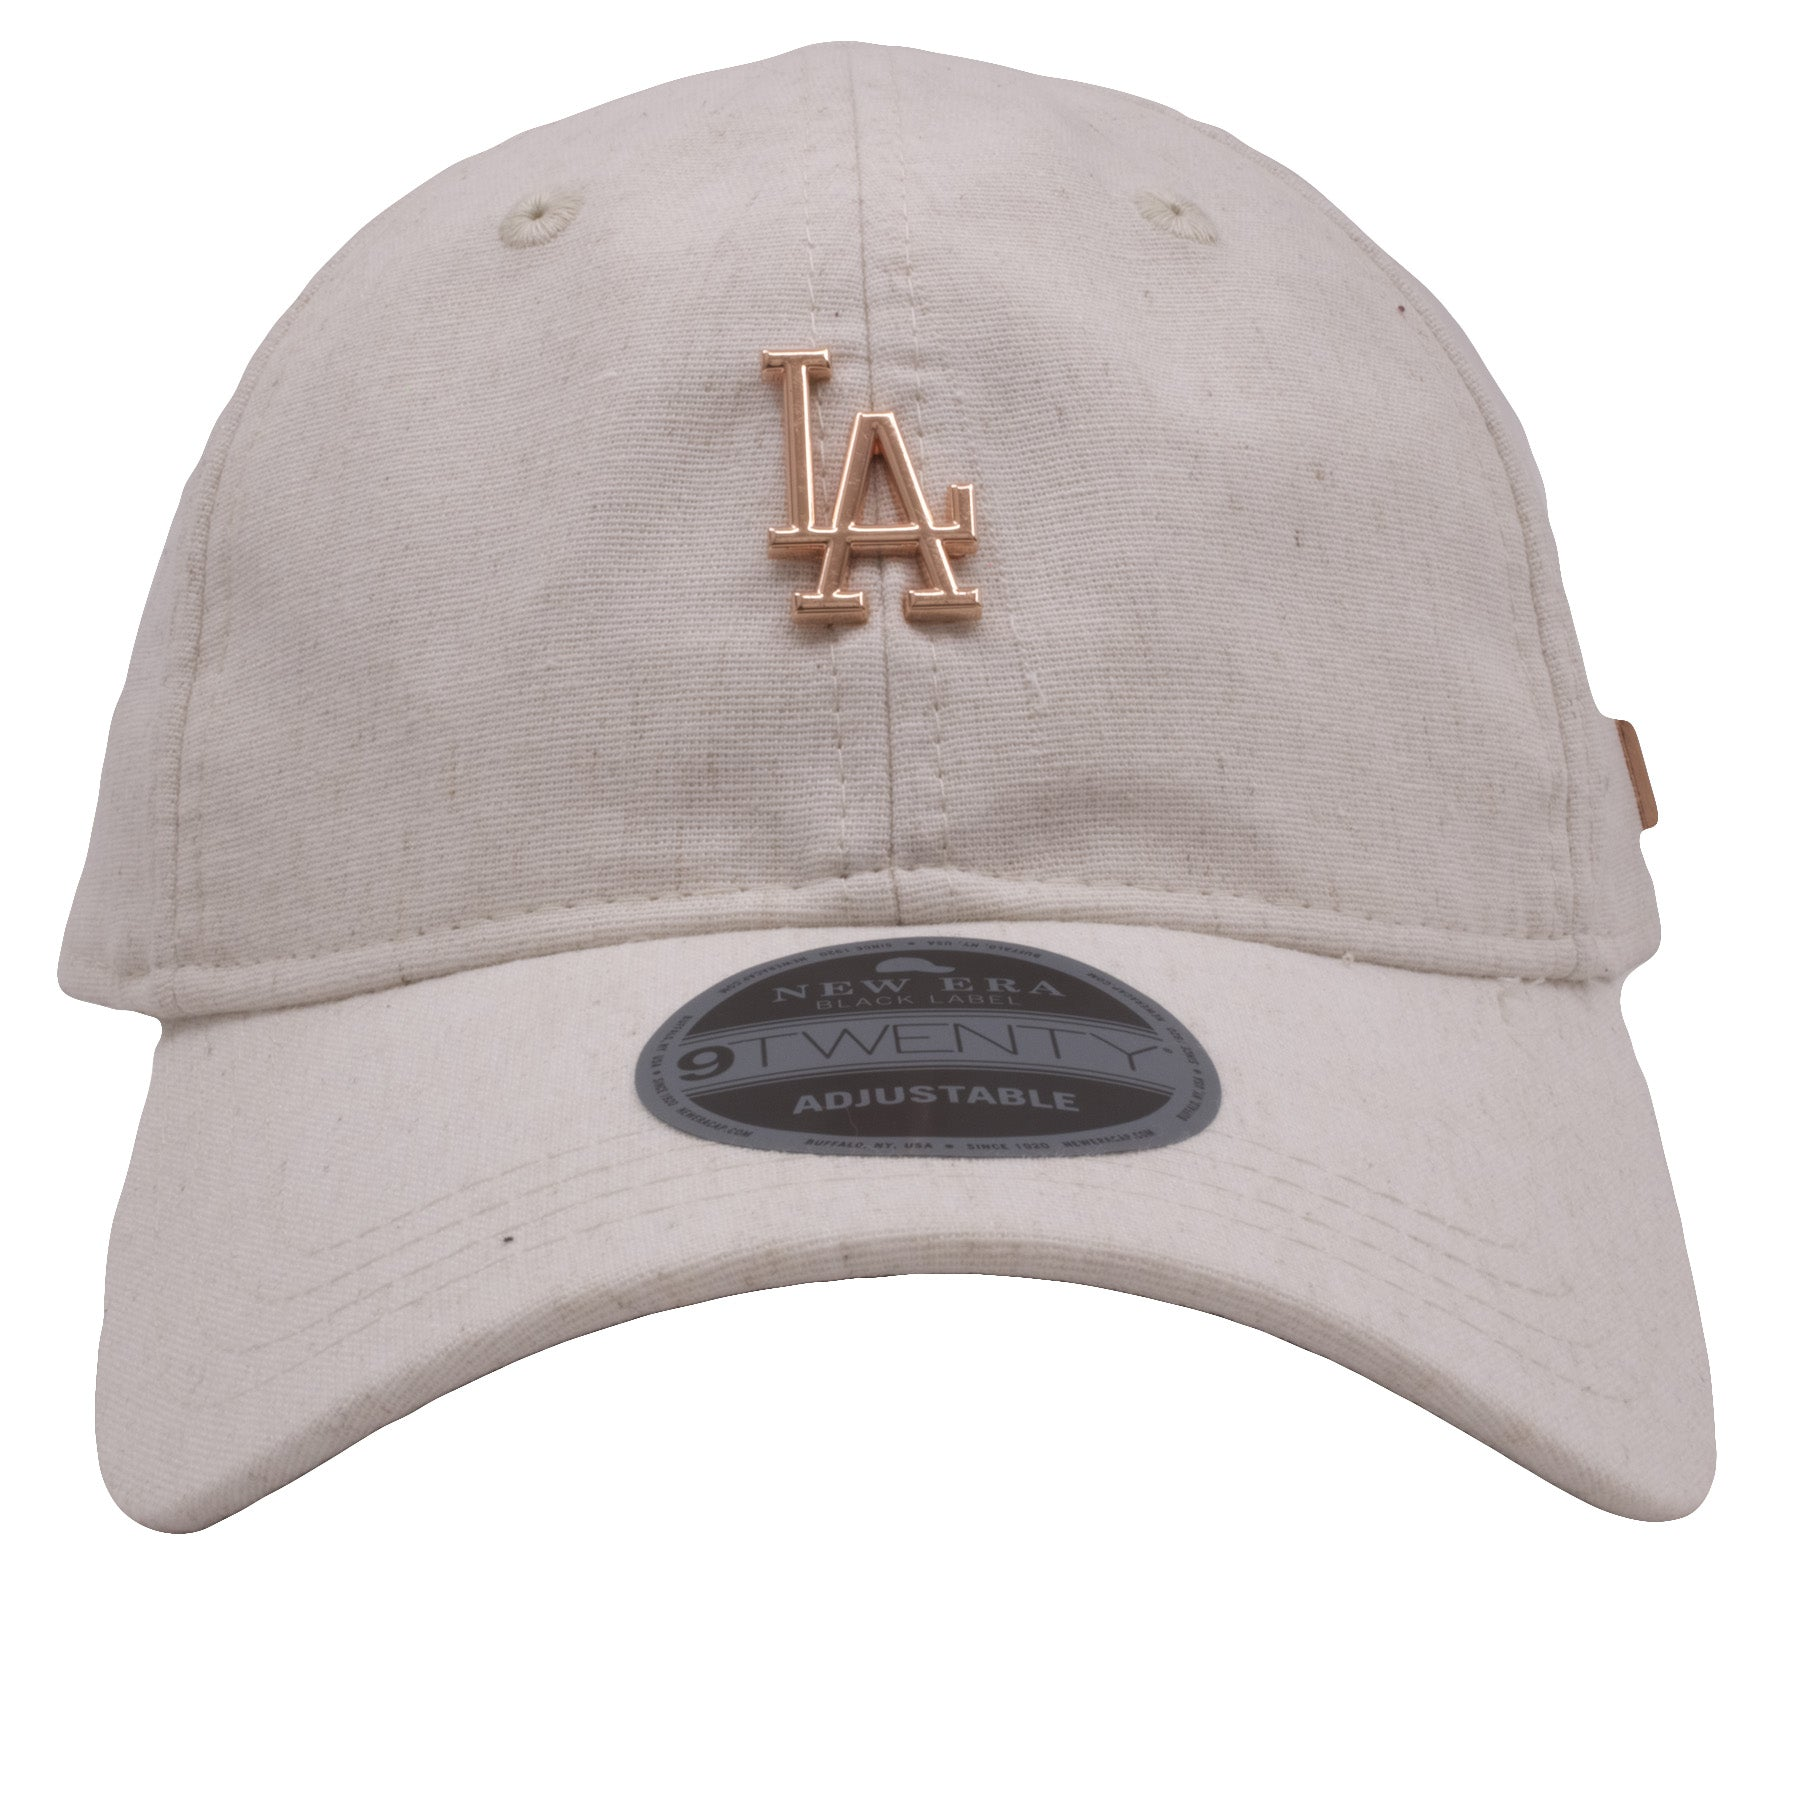 a1a34c50 Los Angeles Dodgers Oatmeal / Rose Gold Premium Black Label 920 Dad Hat